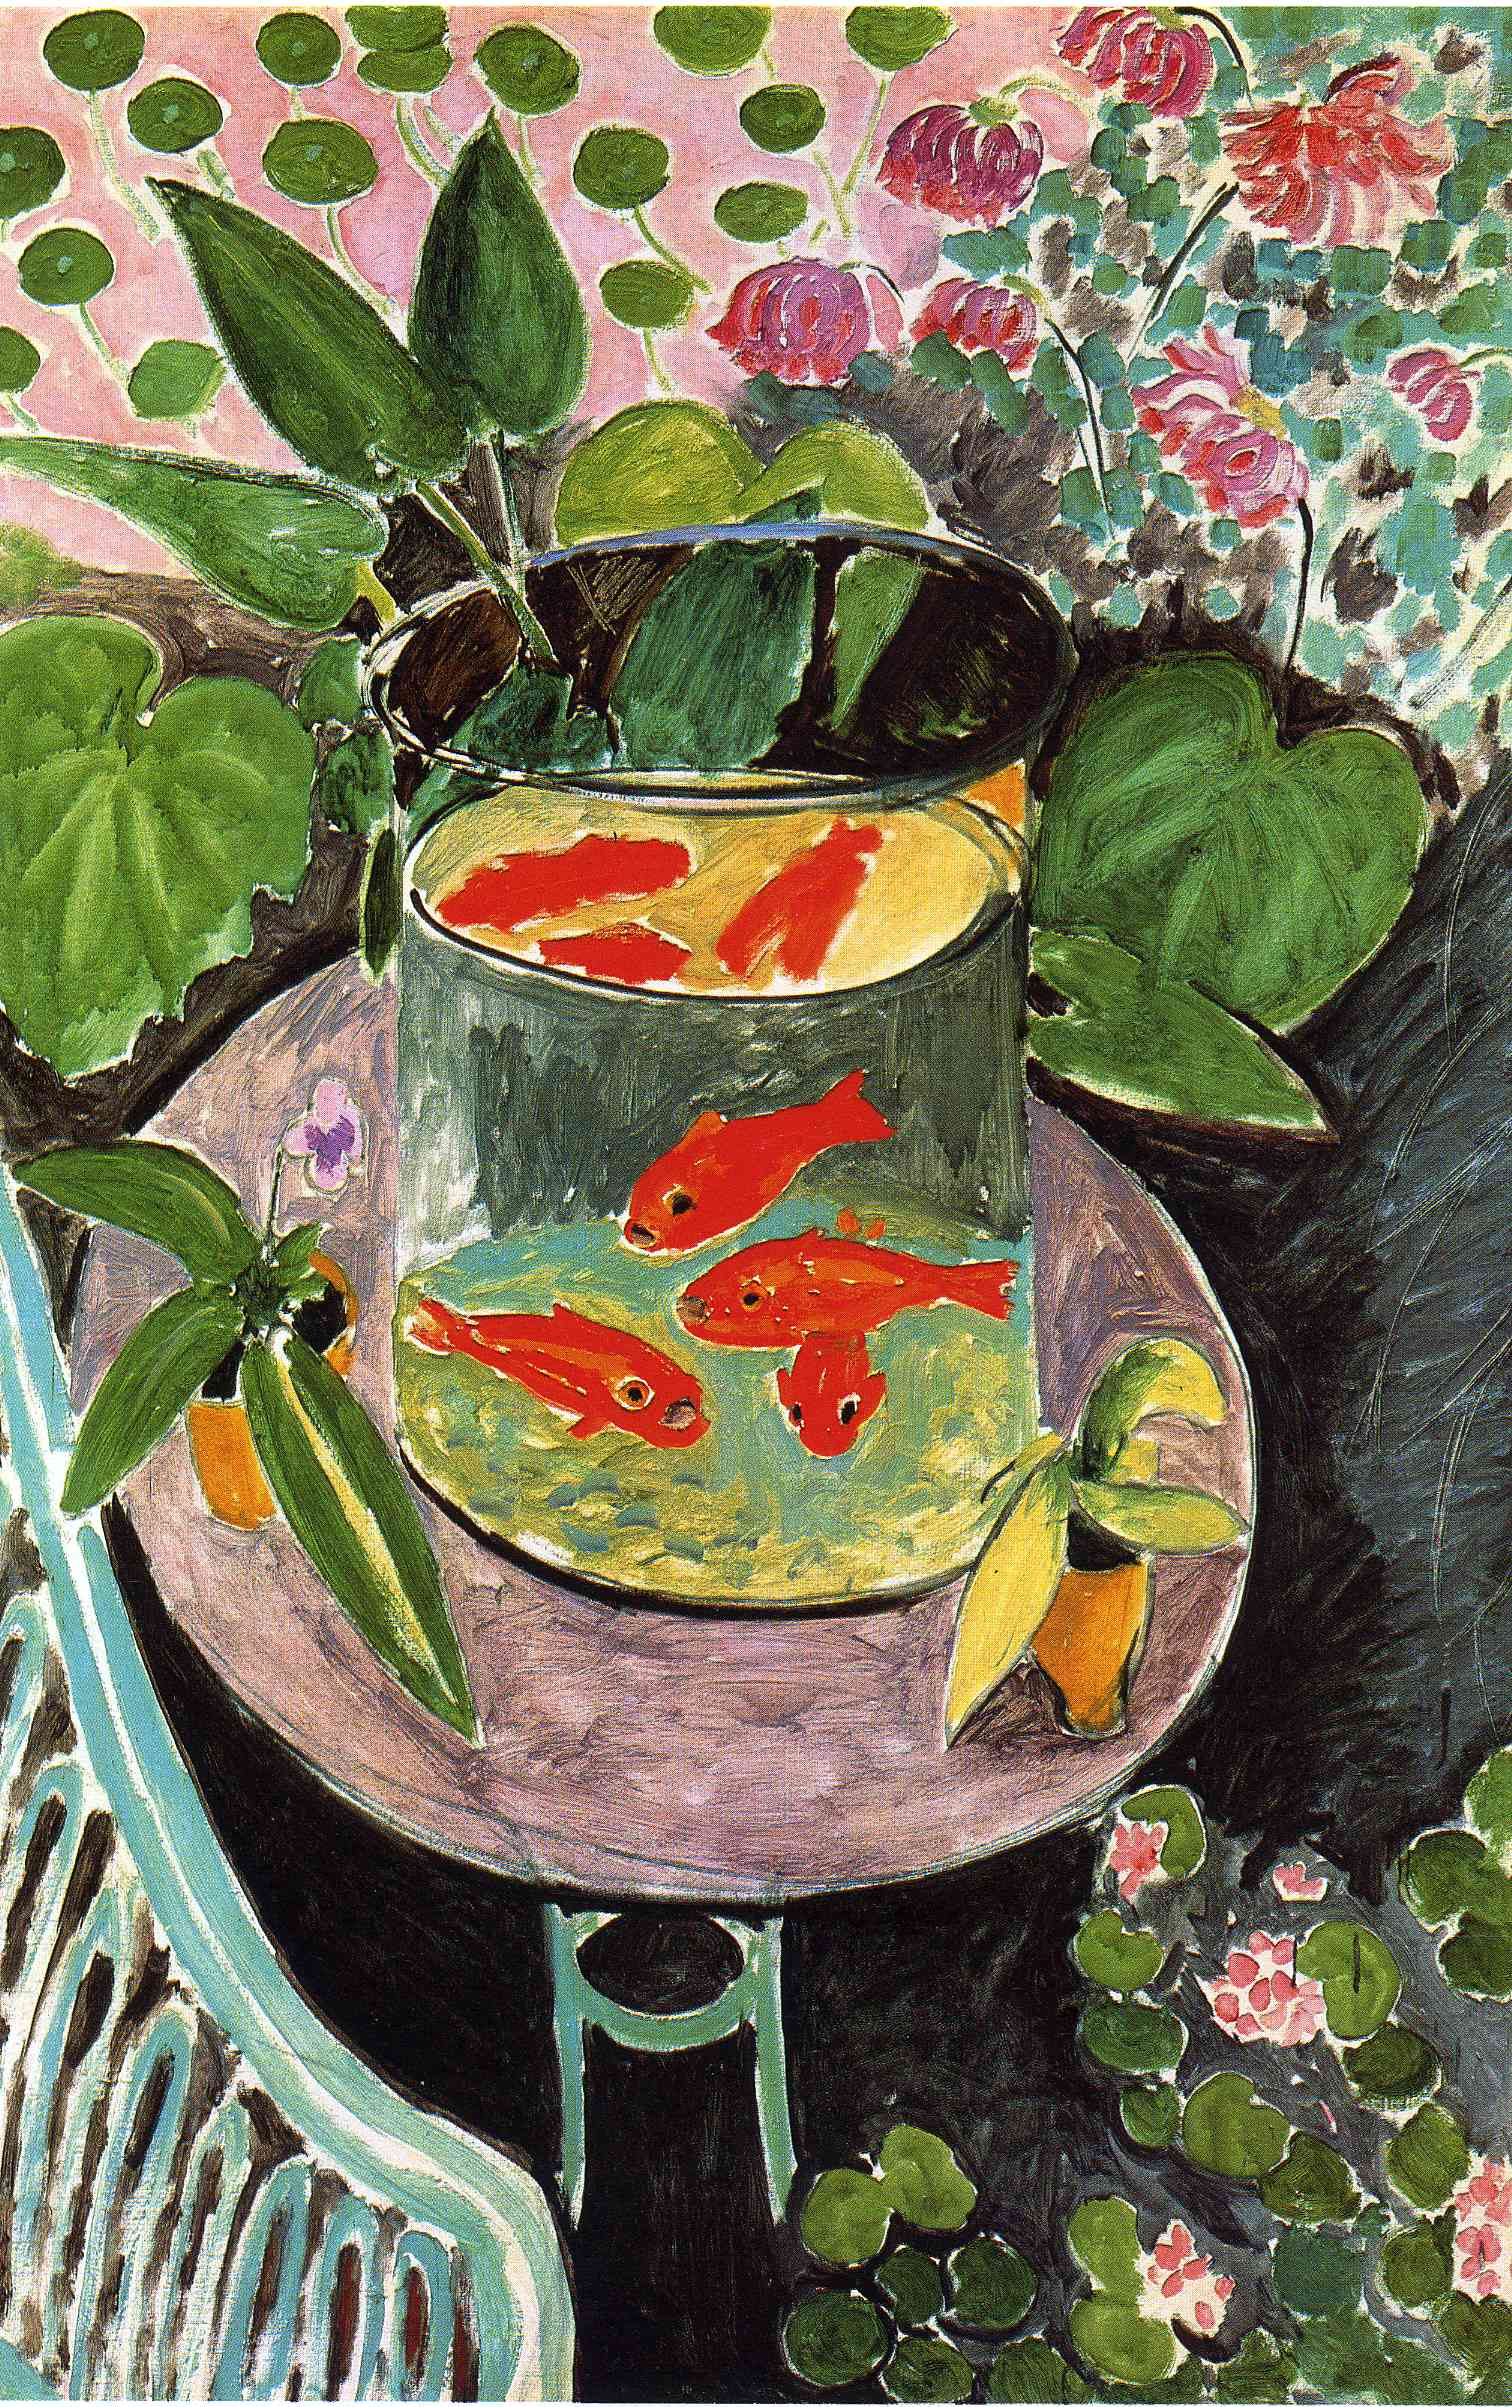 nisbet jeffrey art coach ap art history content areas and images the goldfish henri matisse essay image additional resources